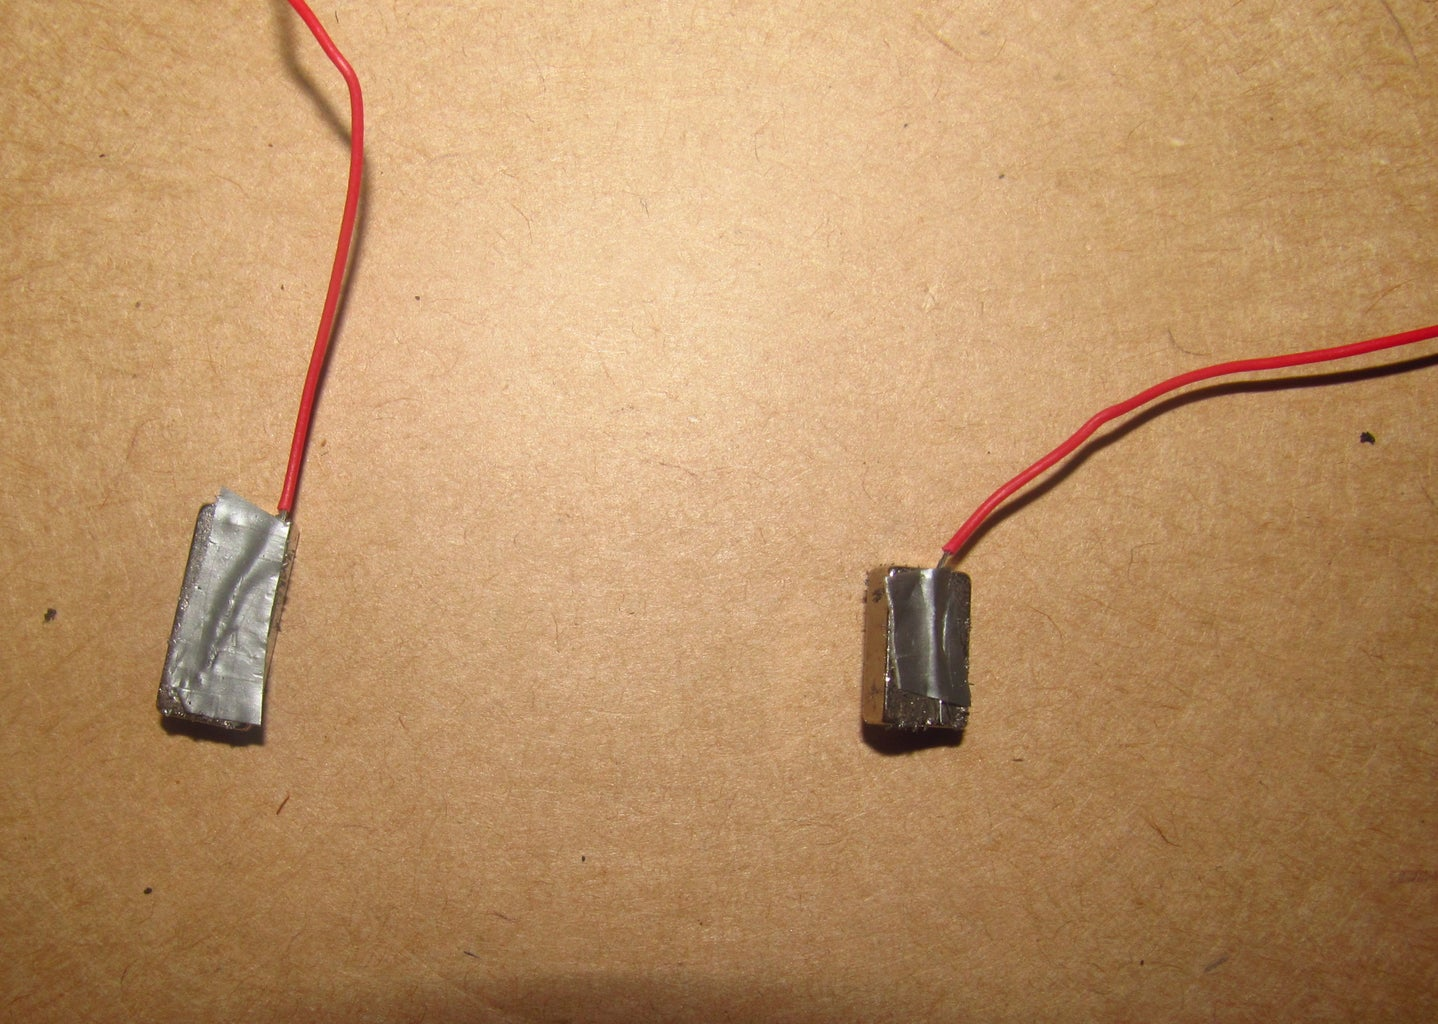 Making the Forward/Reverse Switch